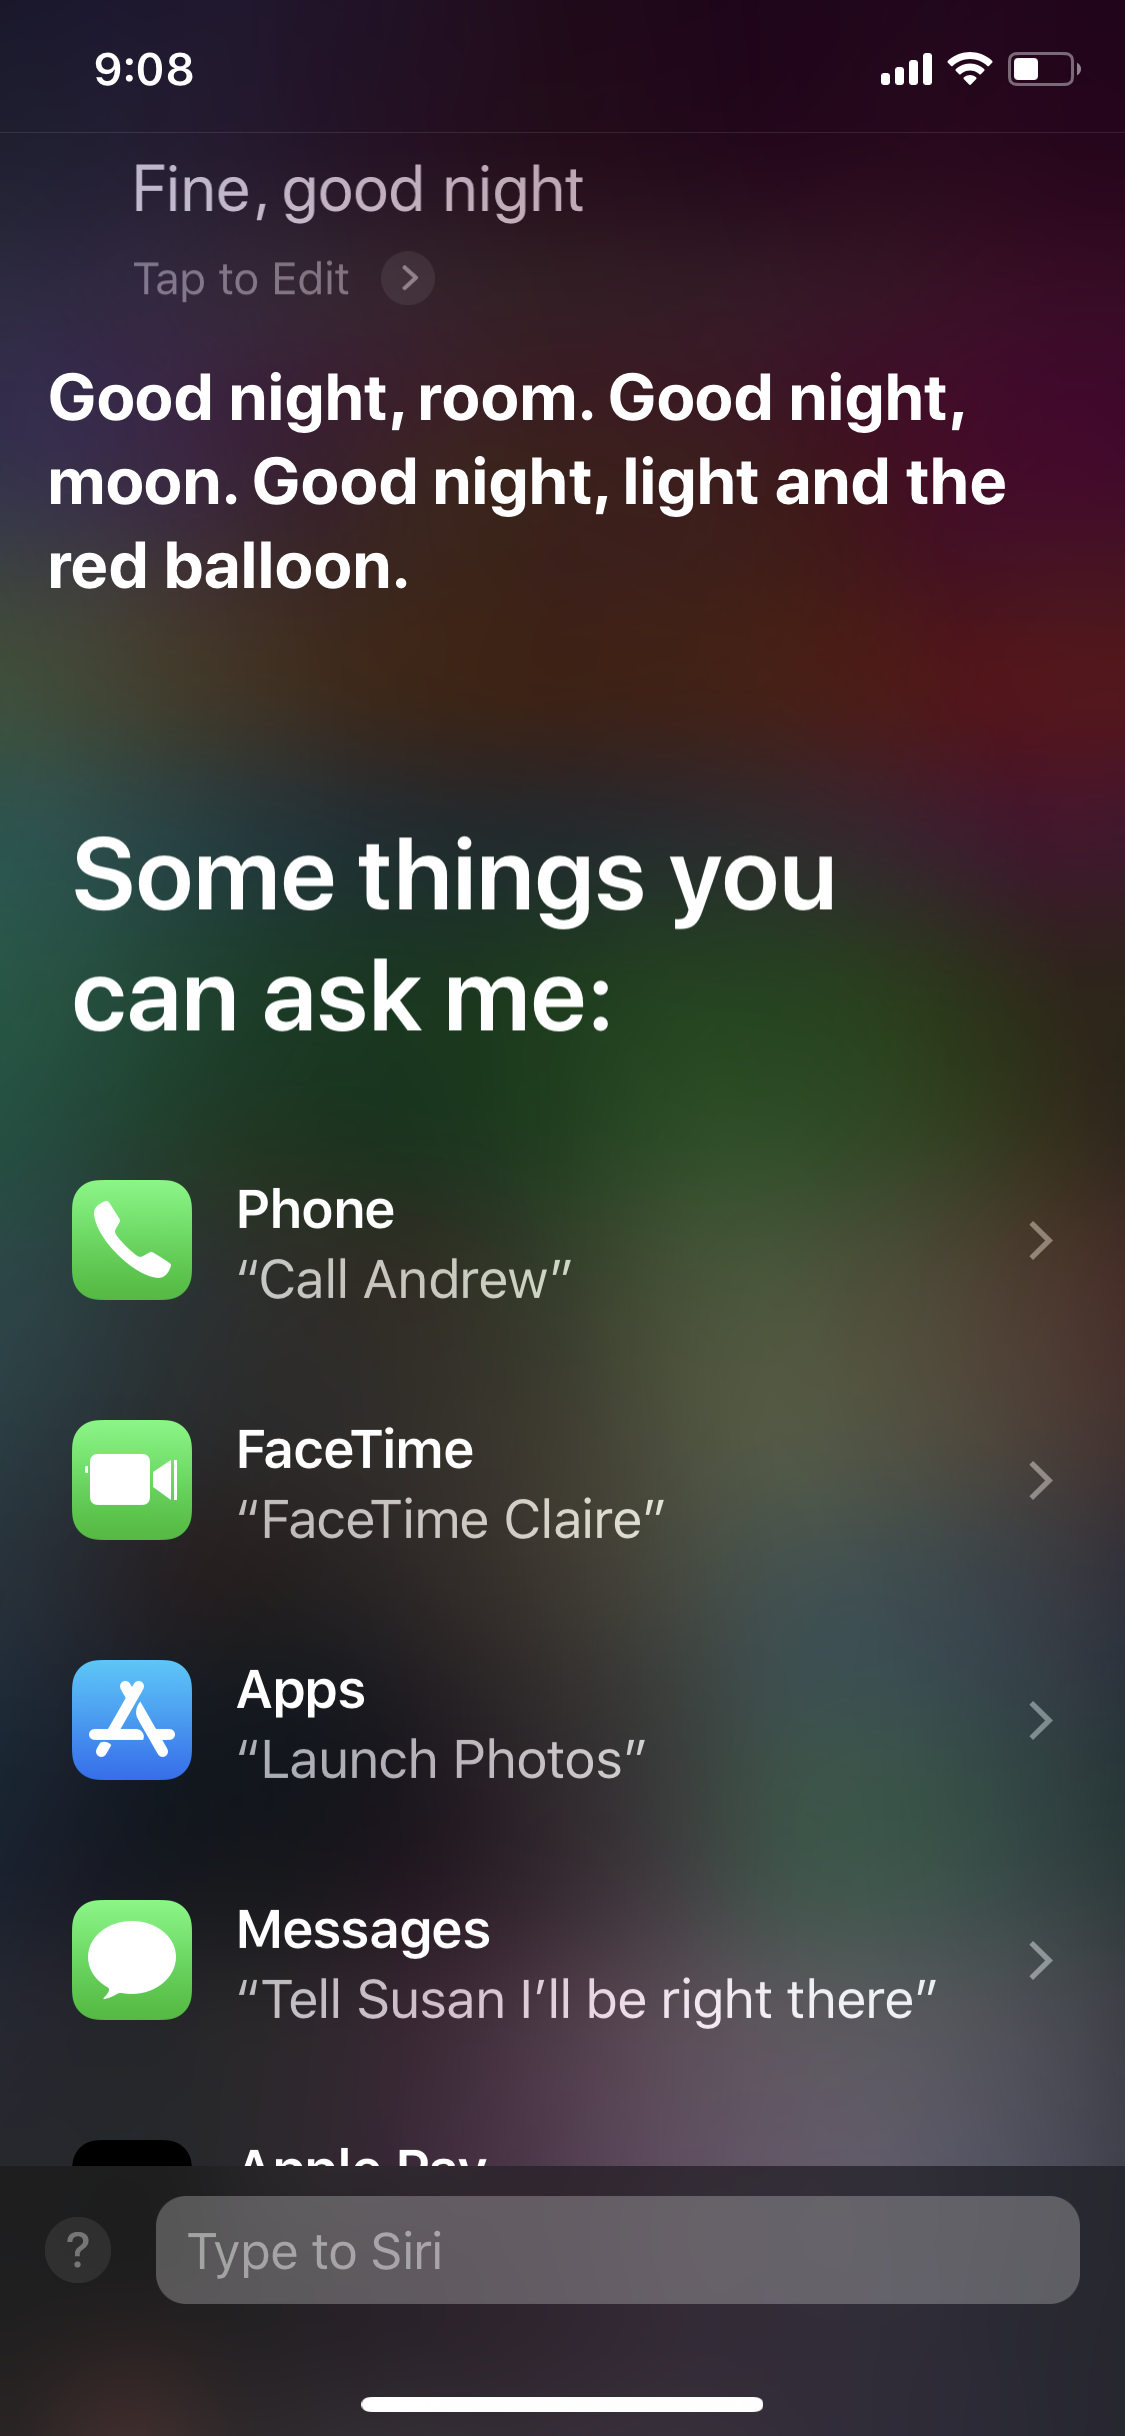 How Do I Get Siri To Say What I Type